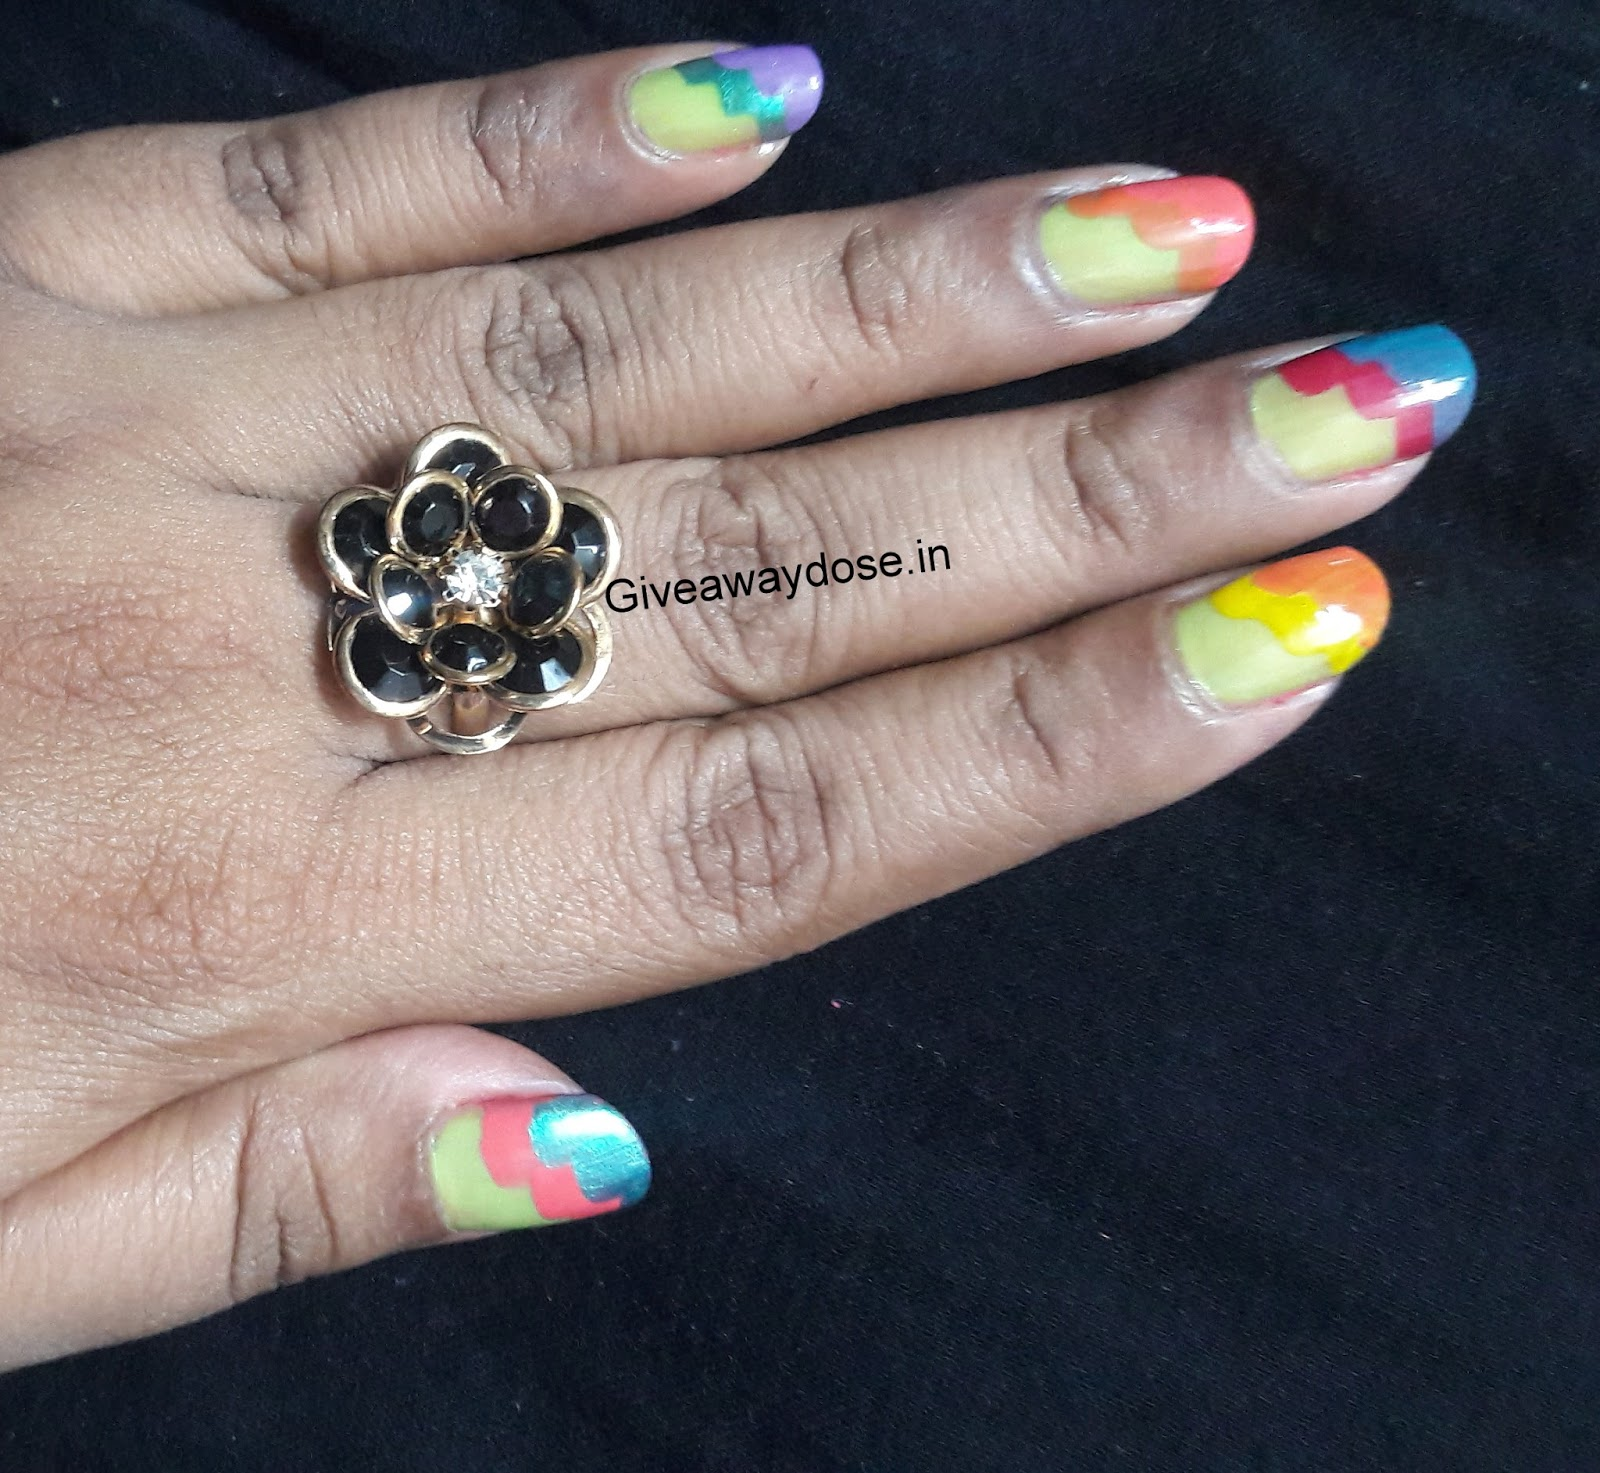 Giveaway Dose East Nail Art